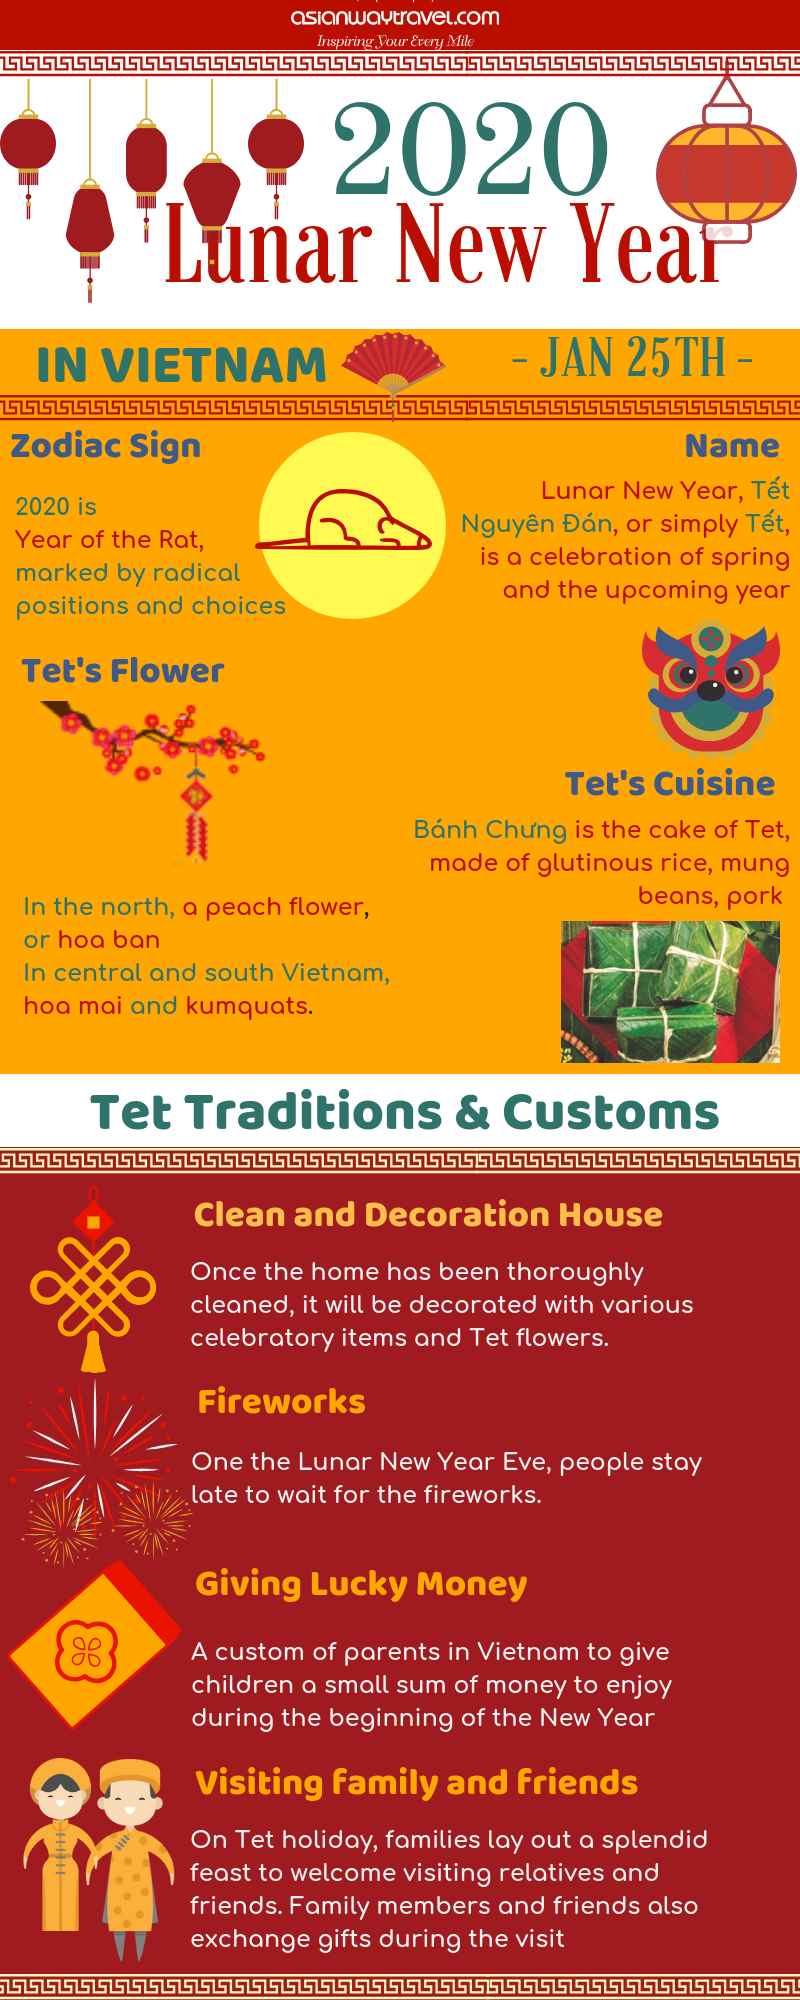 Vietnamese New Year 2020 Lunar New Year in Vietnam